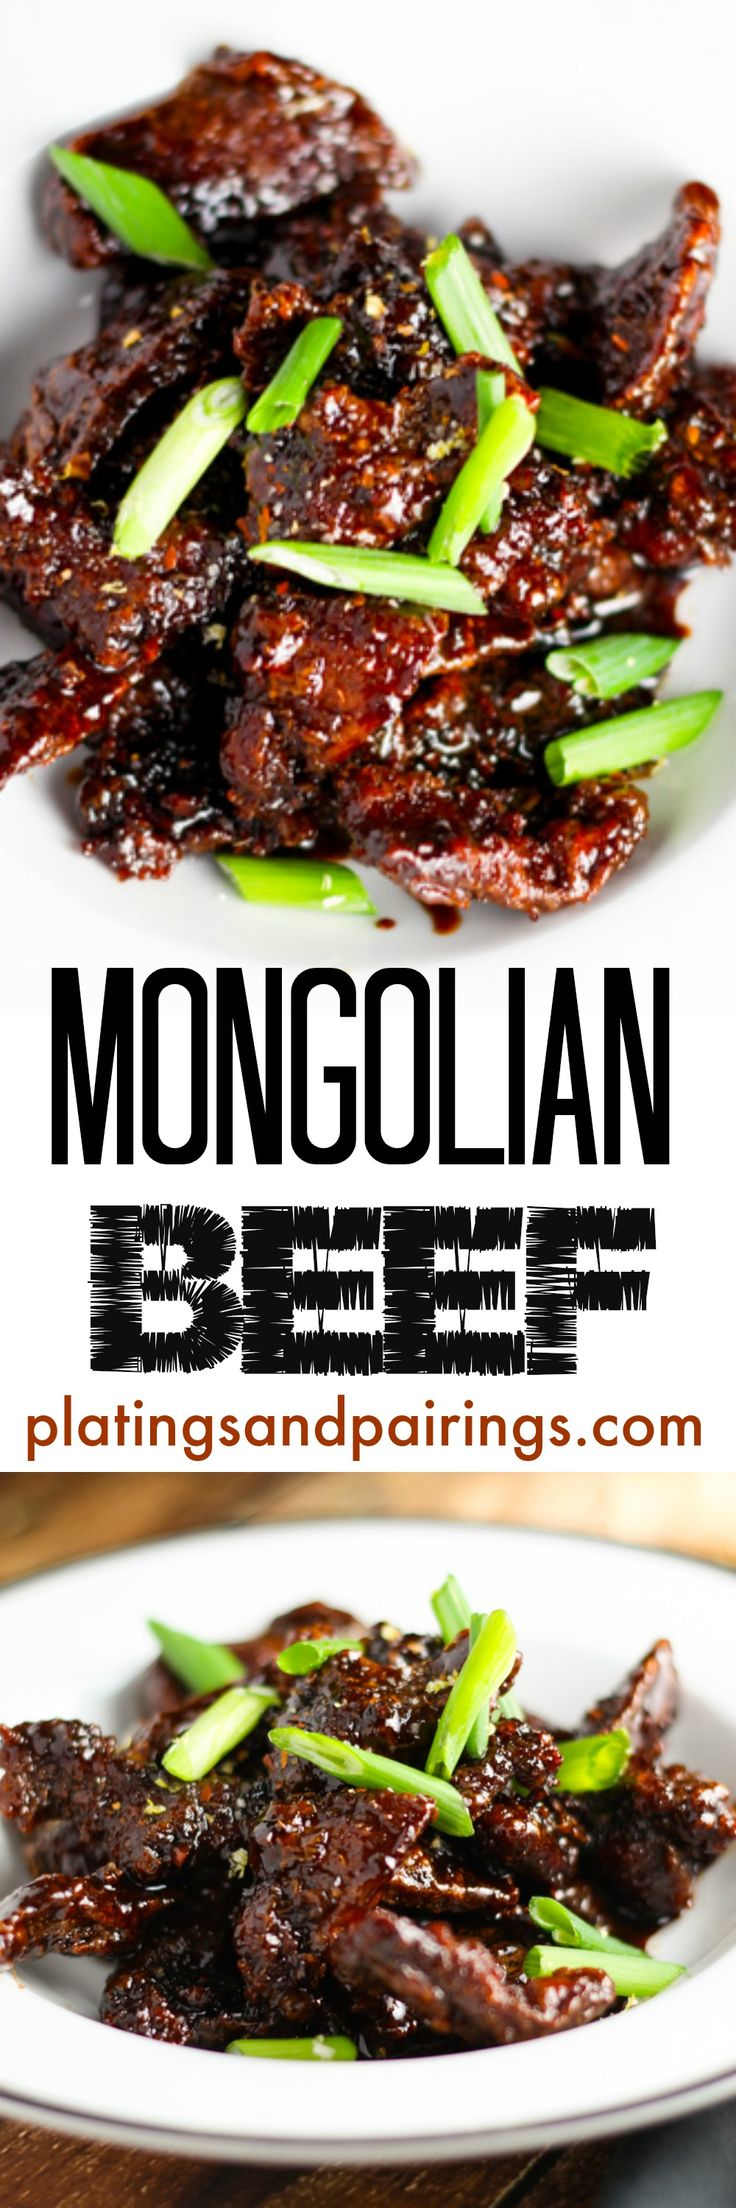 PF Changs has NOTHING on this! | platingsandpairings.com